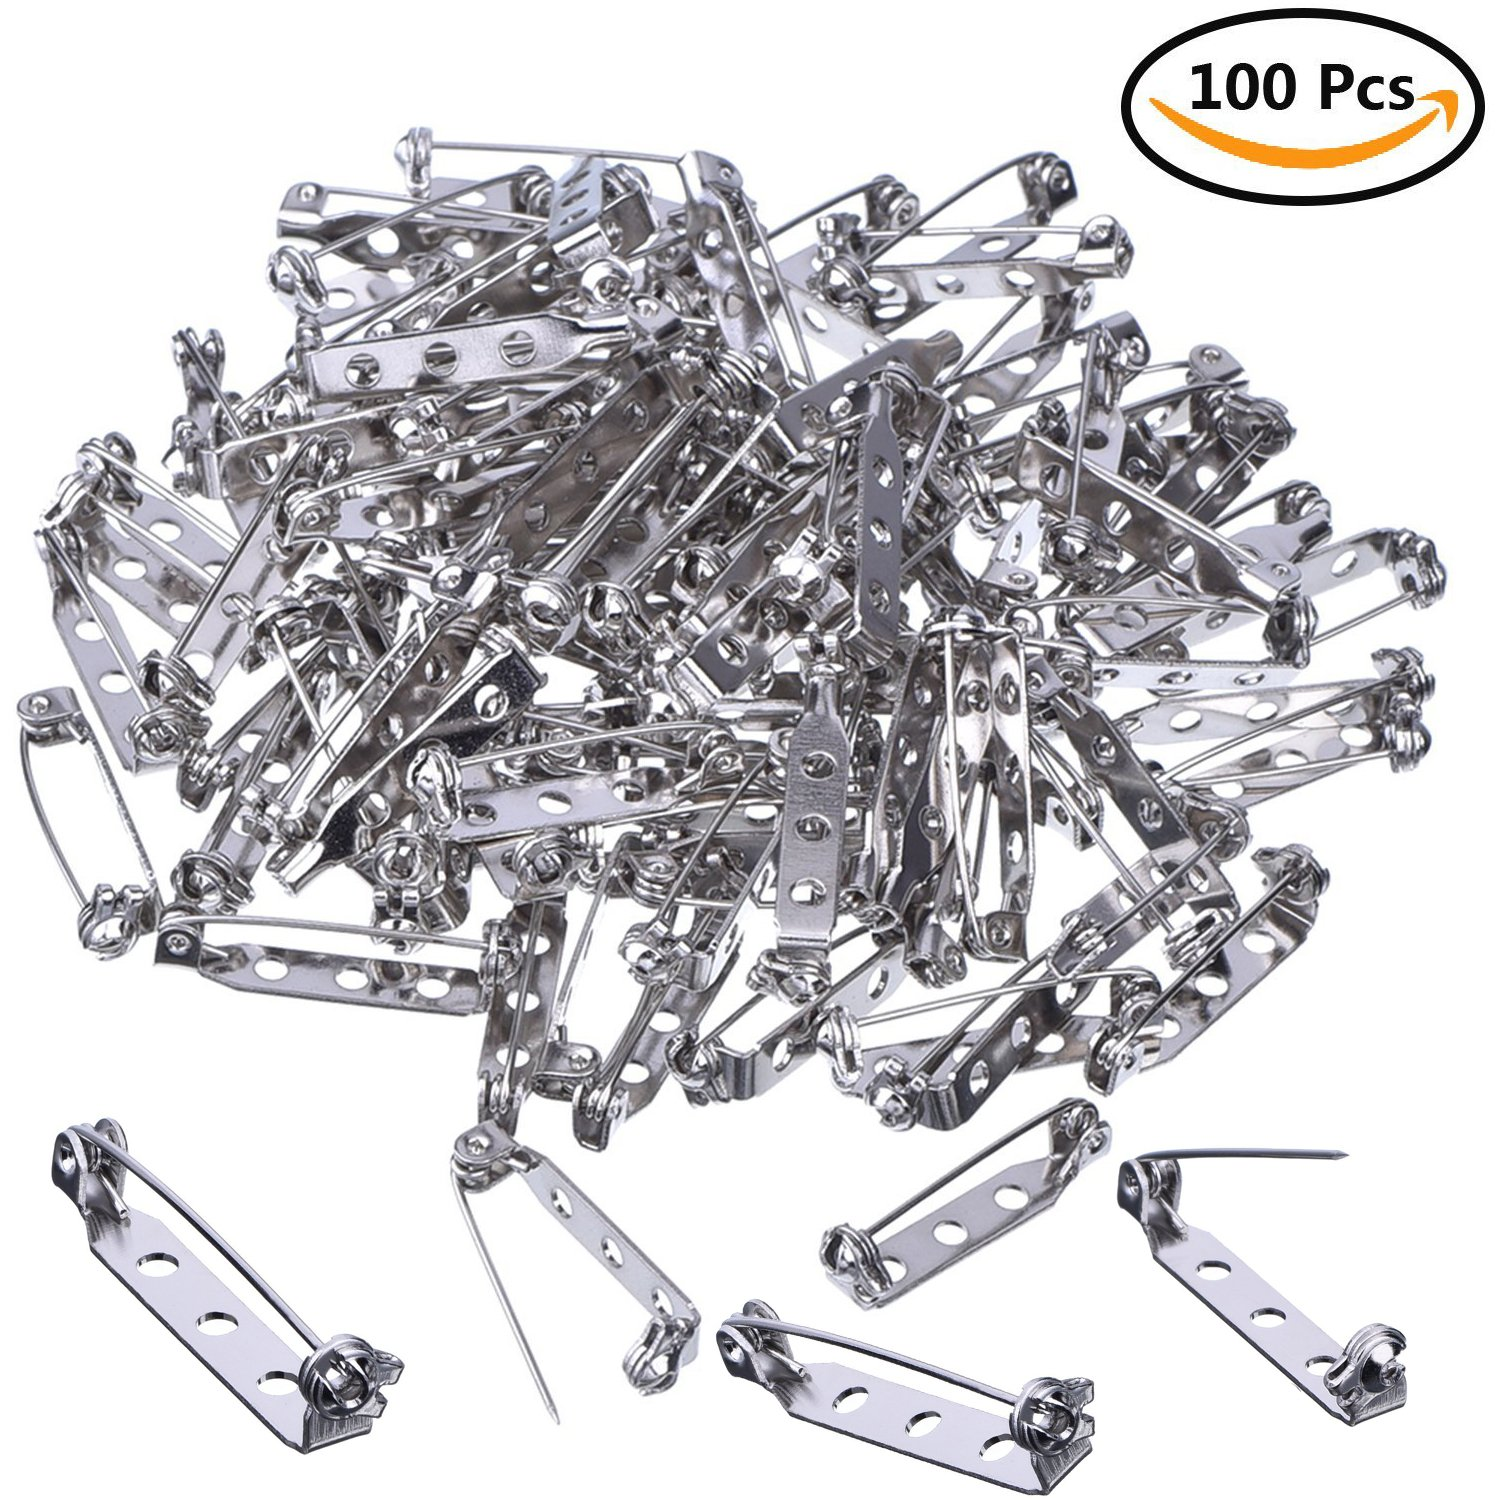 Sliver Name Tags Kesoto 200 PCS Bar Pins Brooch Pin Backs Safety Clasp Badge Fasteners for Craft Projects 25mm Toy Pins and Jewellery Findings Making